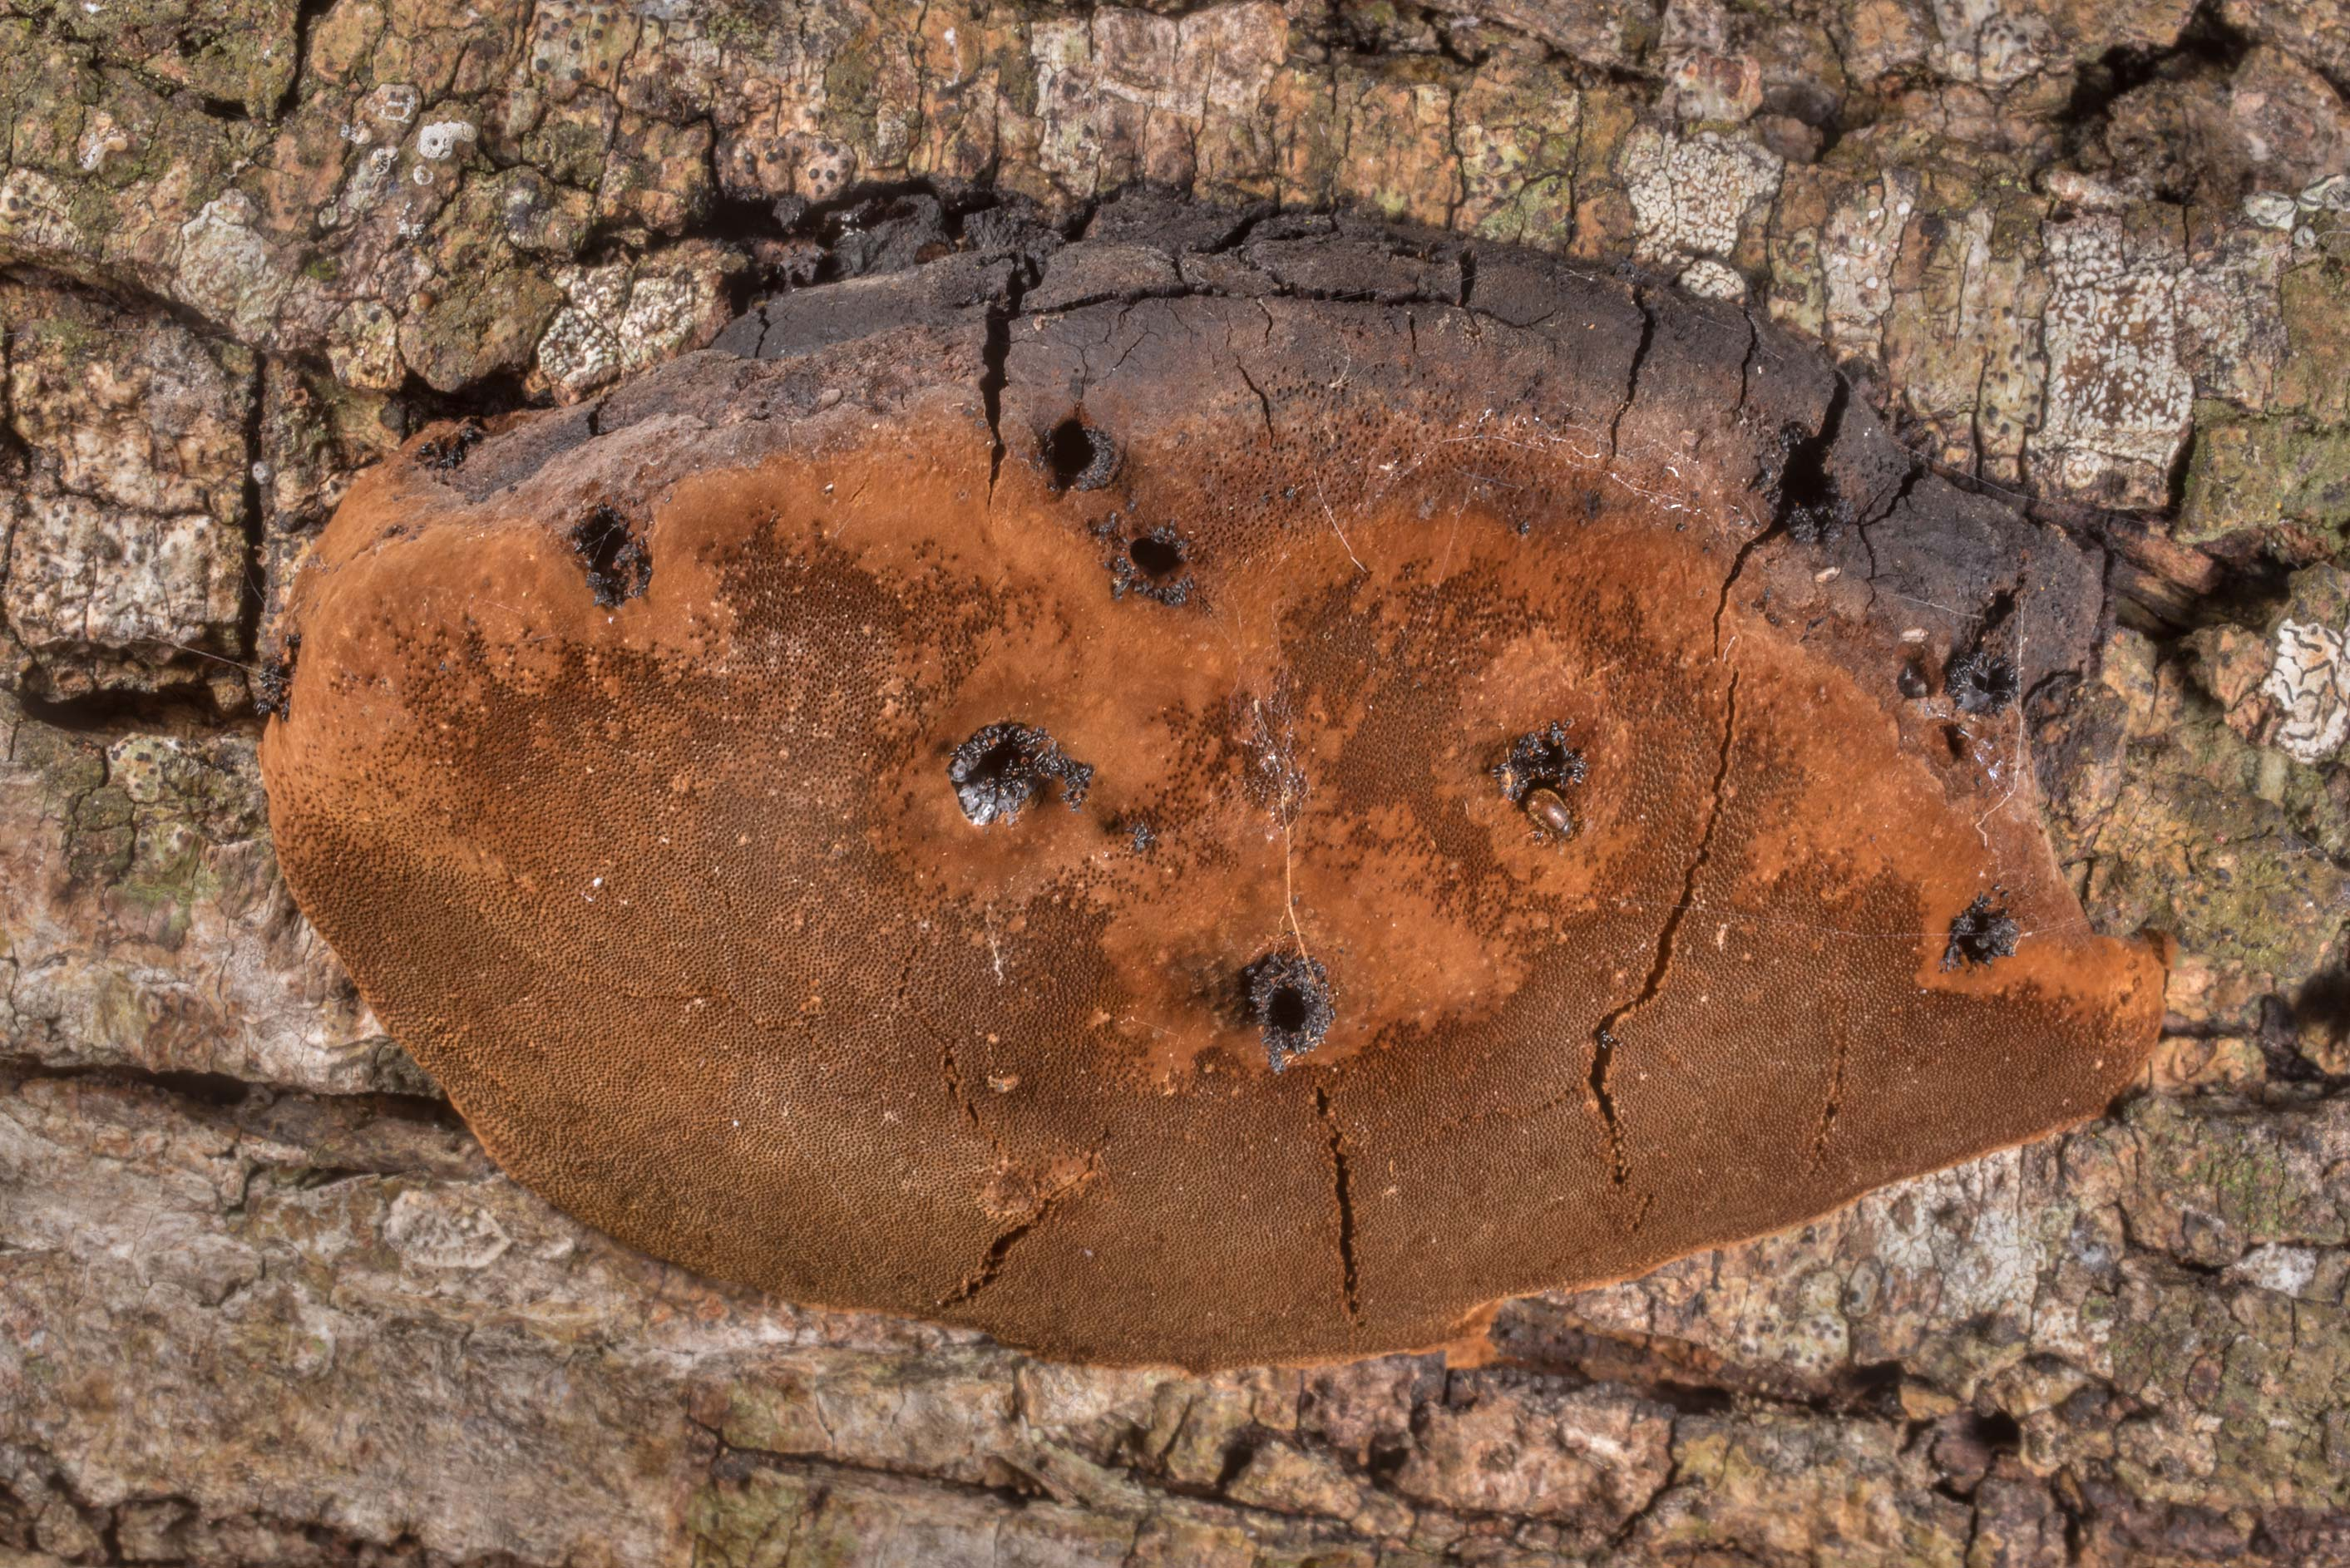 Underside of bracket polypore mushroom Phellinus...State Historic Site. Washington, Texas